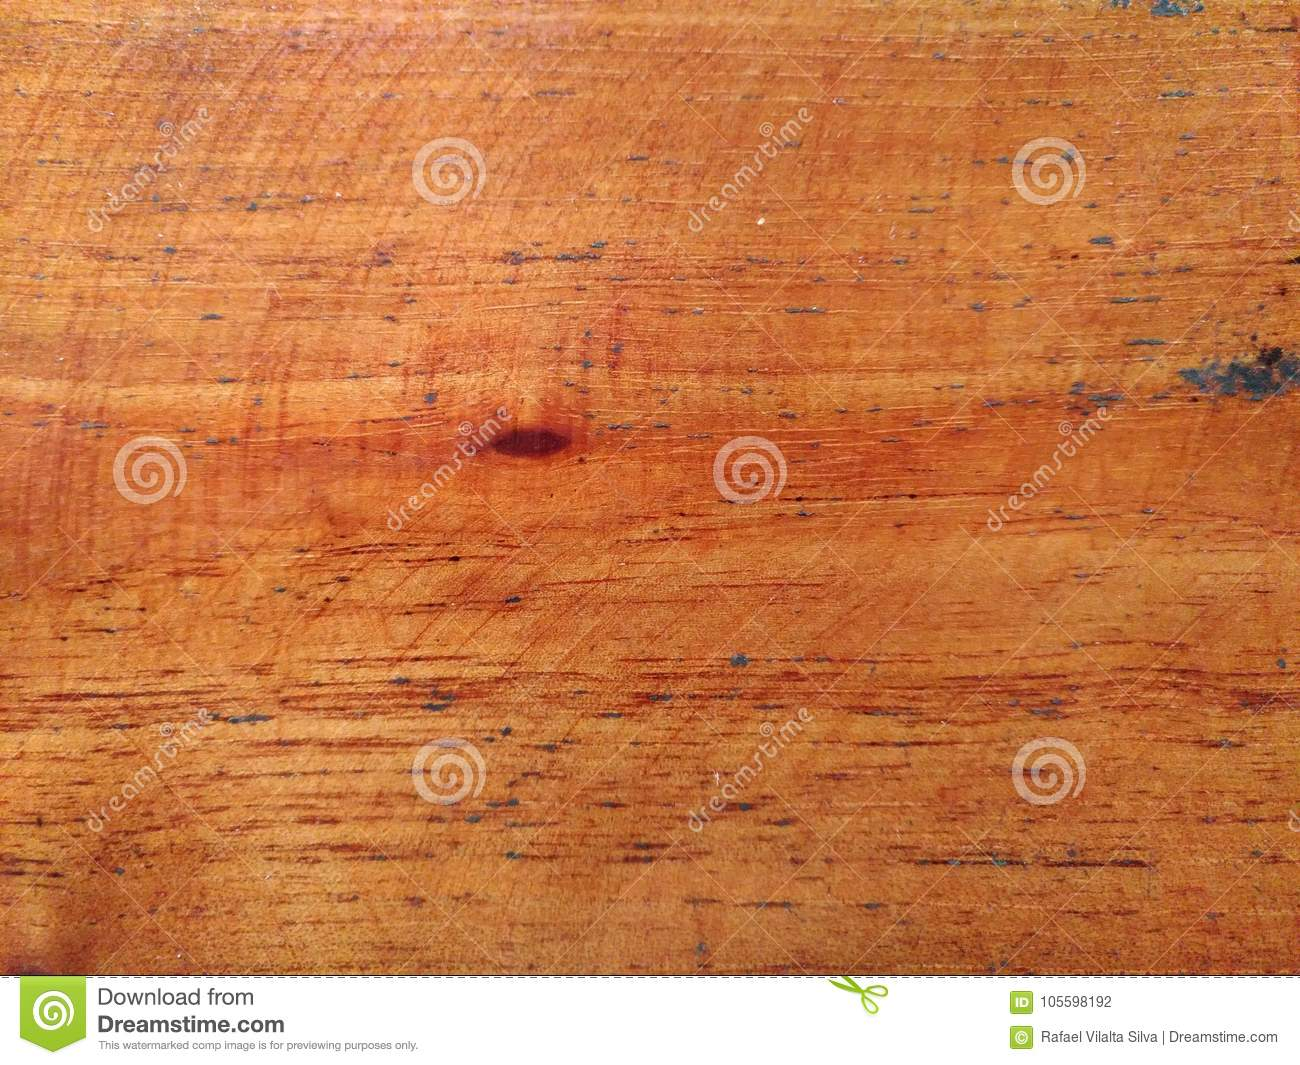 Background Smooth Wood Texture Tree Trunk Shades Of Brown Plain Wood Plane Predominant Brown Color Stock Photo Image Of Detail Plank 105598192